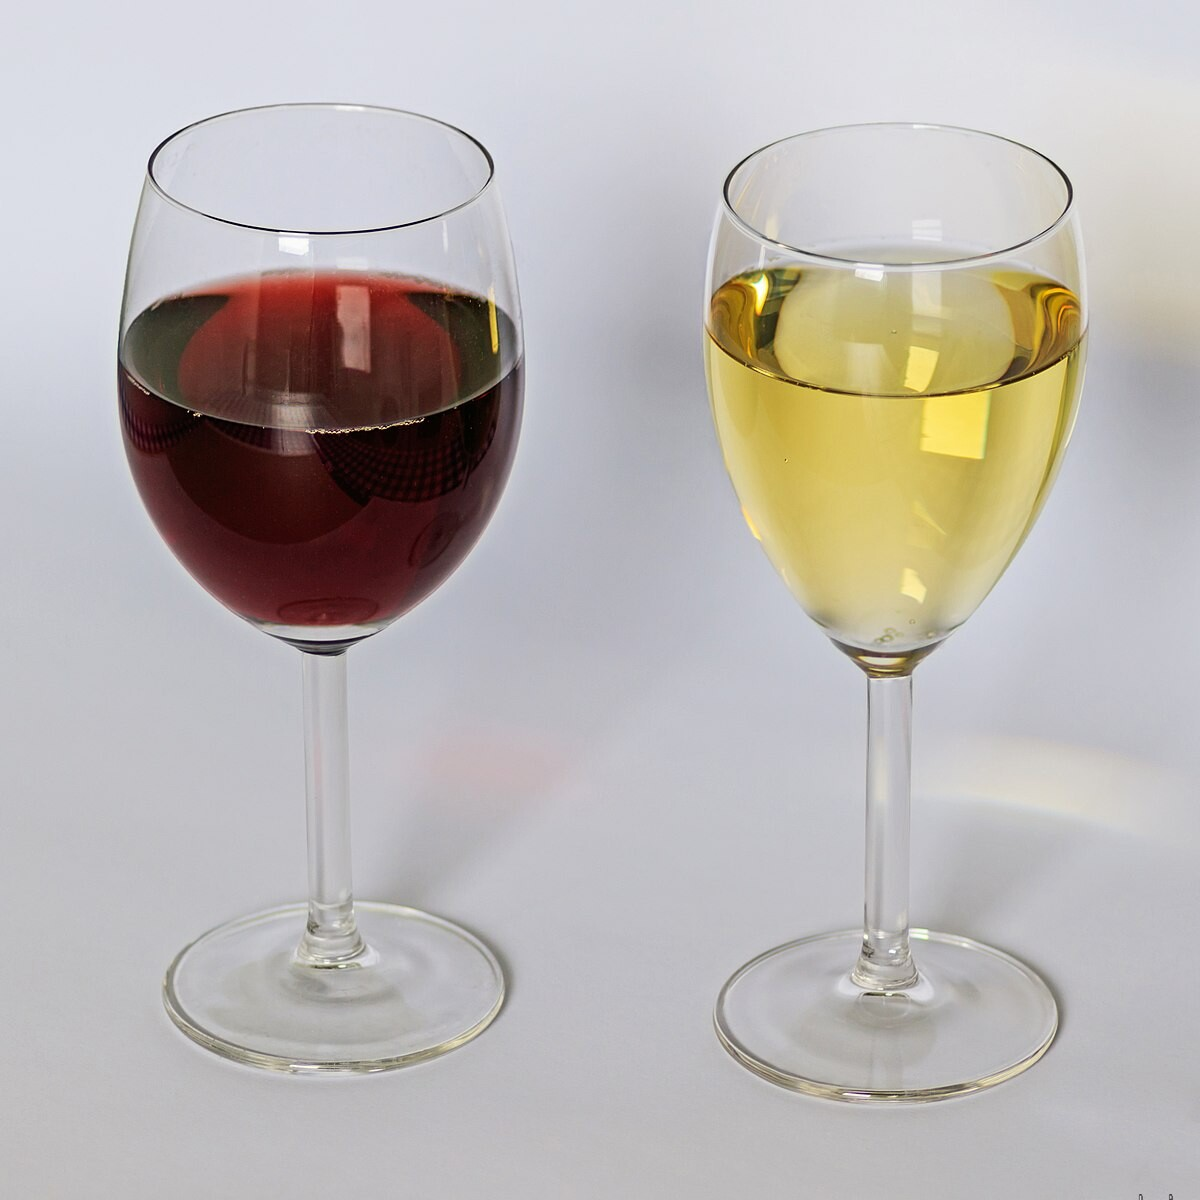 is white wine served cold or room temperature